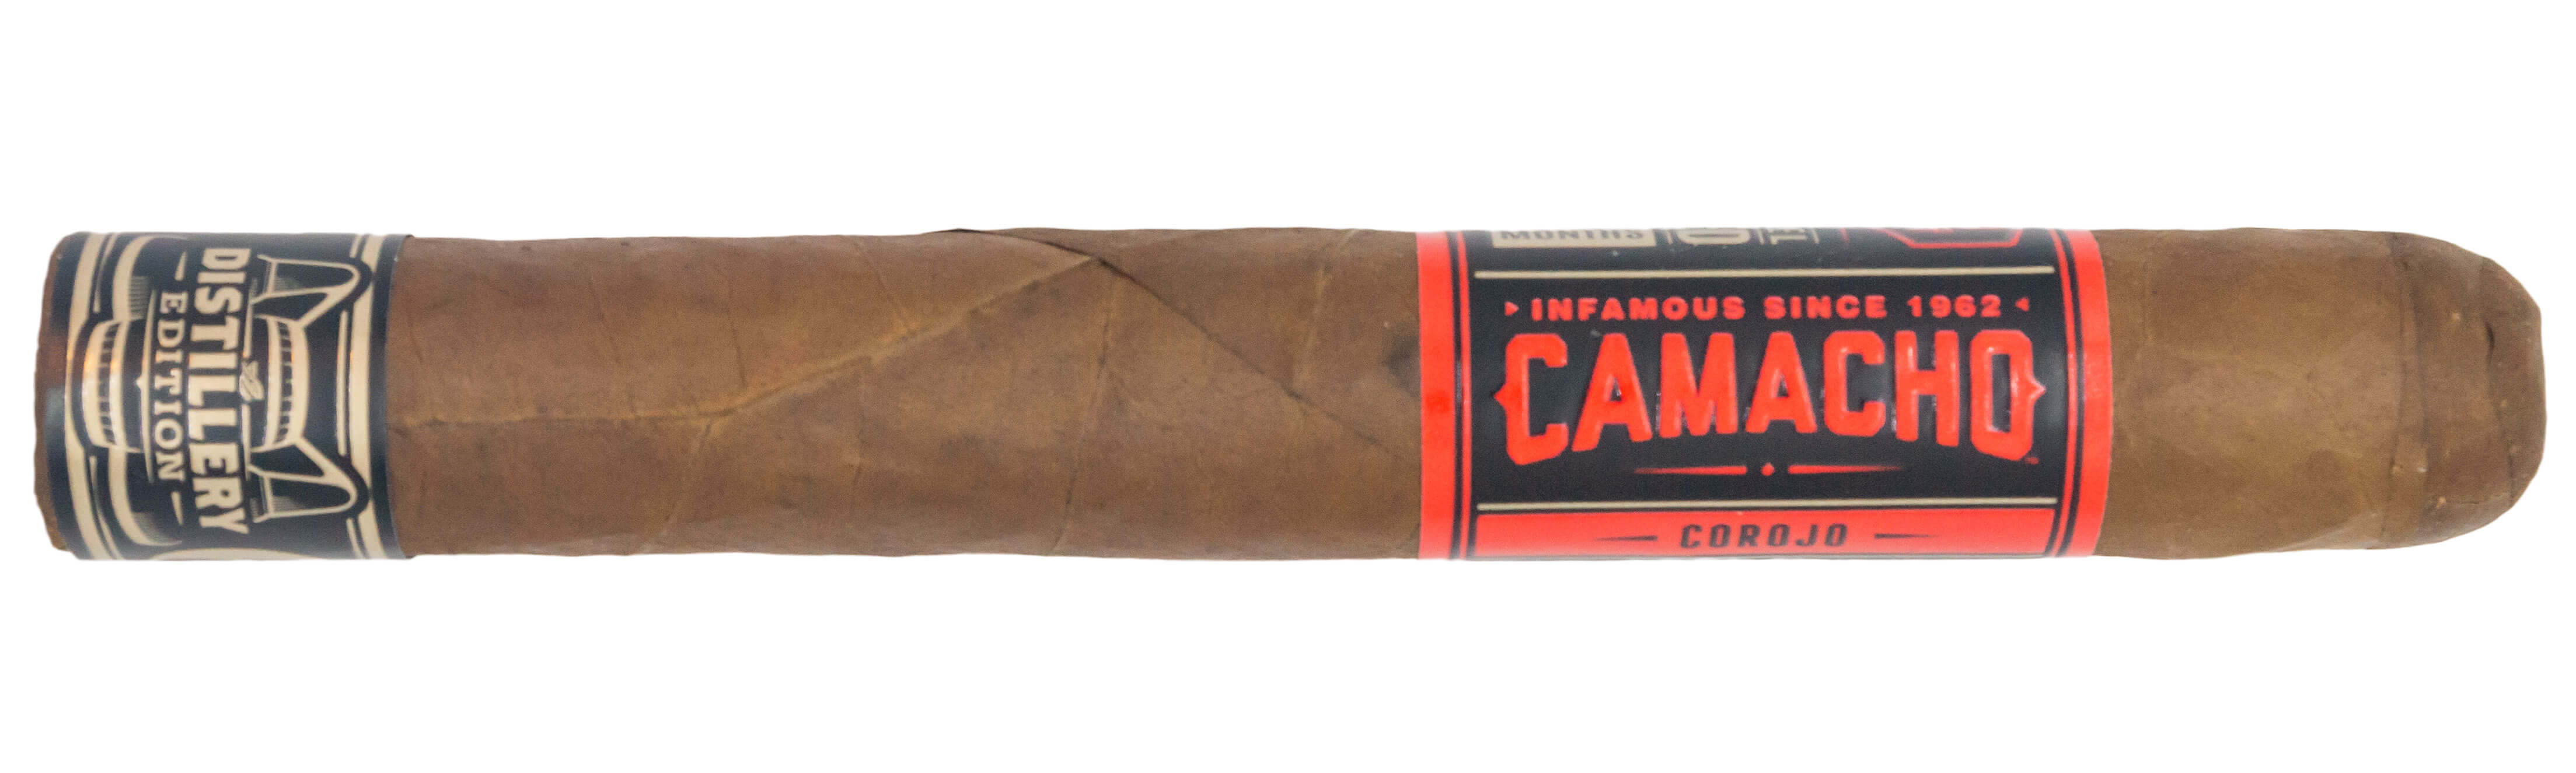 Blind Cigar Review: Camacho | Distillery Edition Corojo Toro